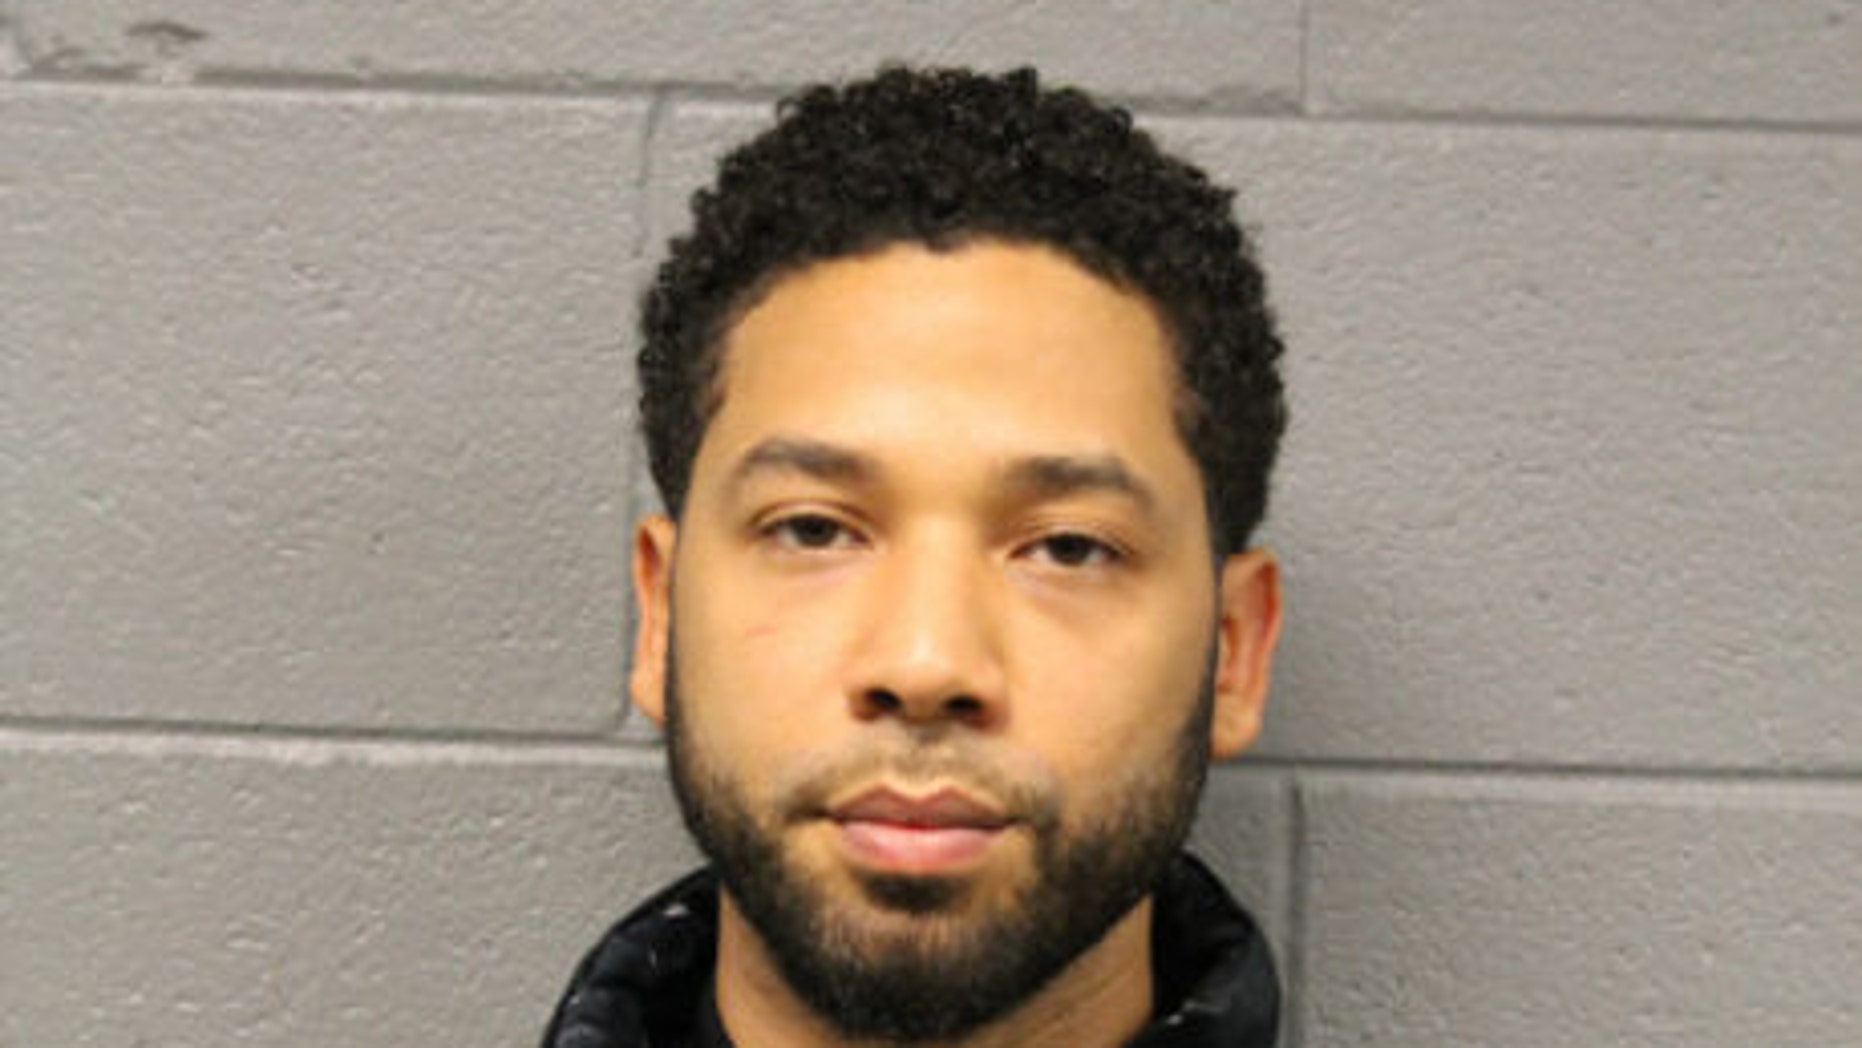 Jussie Smollett Under Investigation for Filing False Police Report